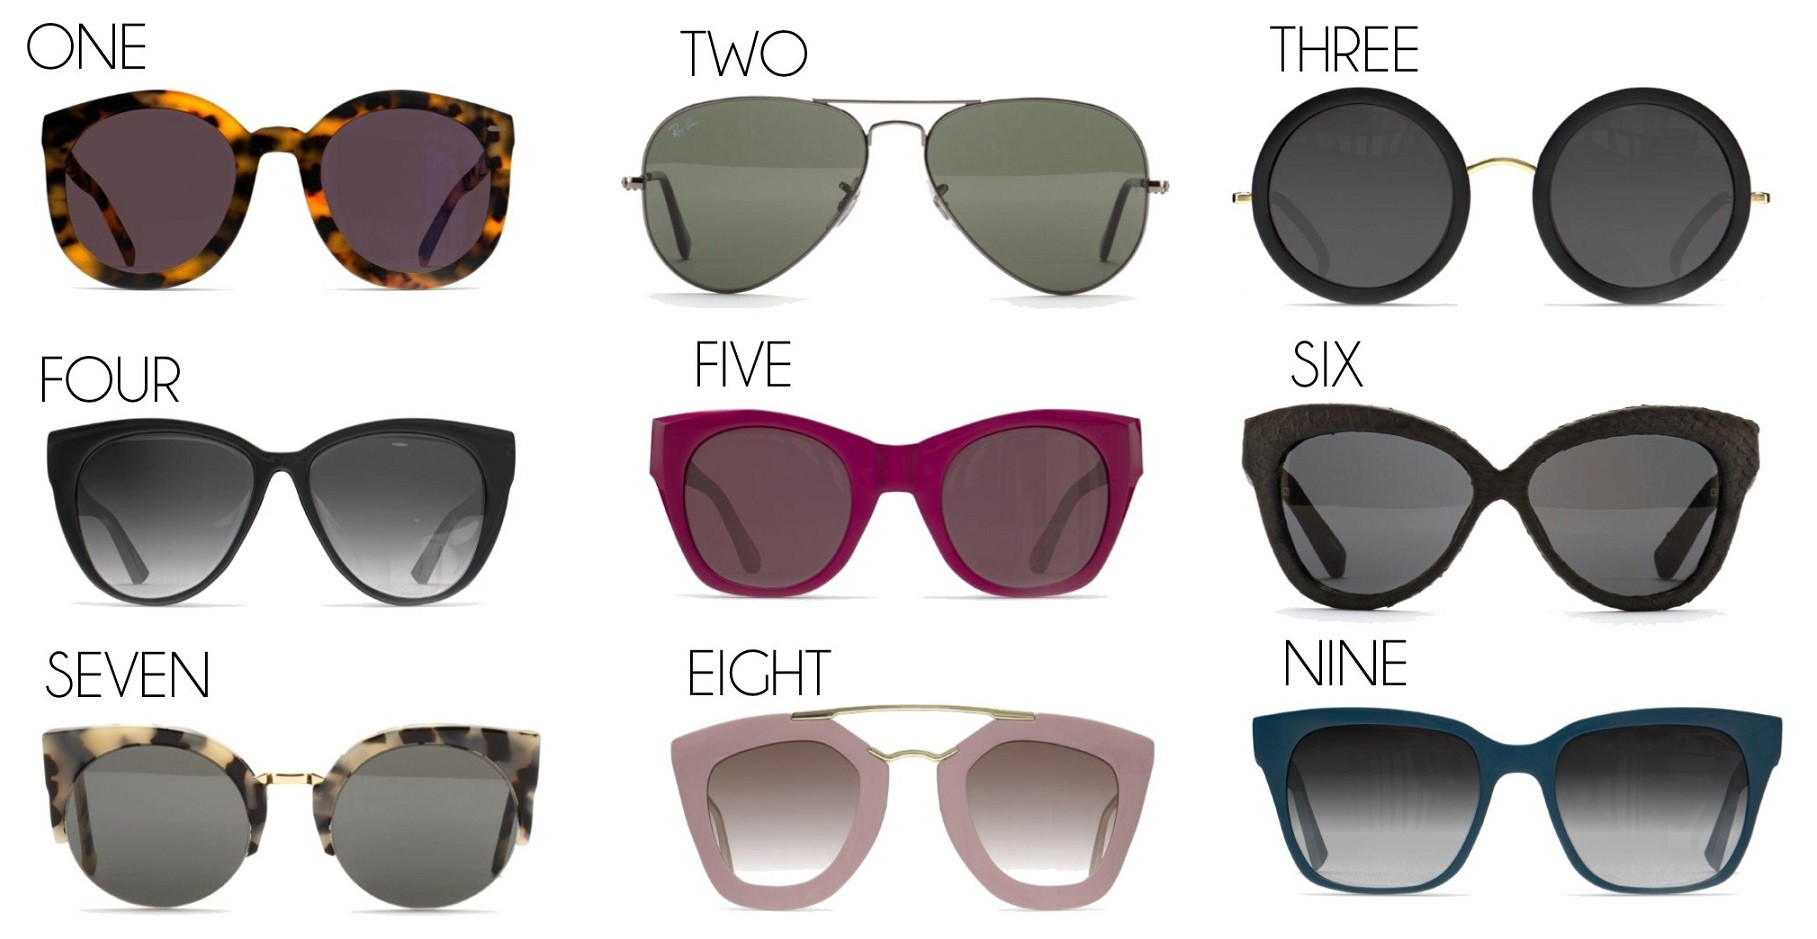 98cc82166616 Here is a selection of some of my favorite DITTO sunglasses that you can  shop or receive a FREE MONTH of DITTO s Endless Eyewear with the PROMO  CODE  ...